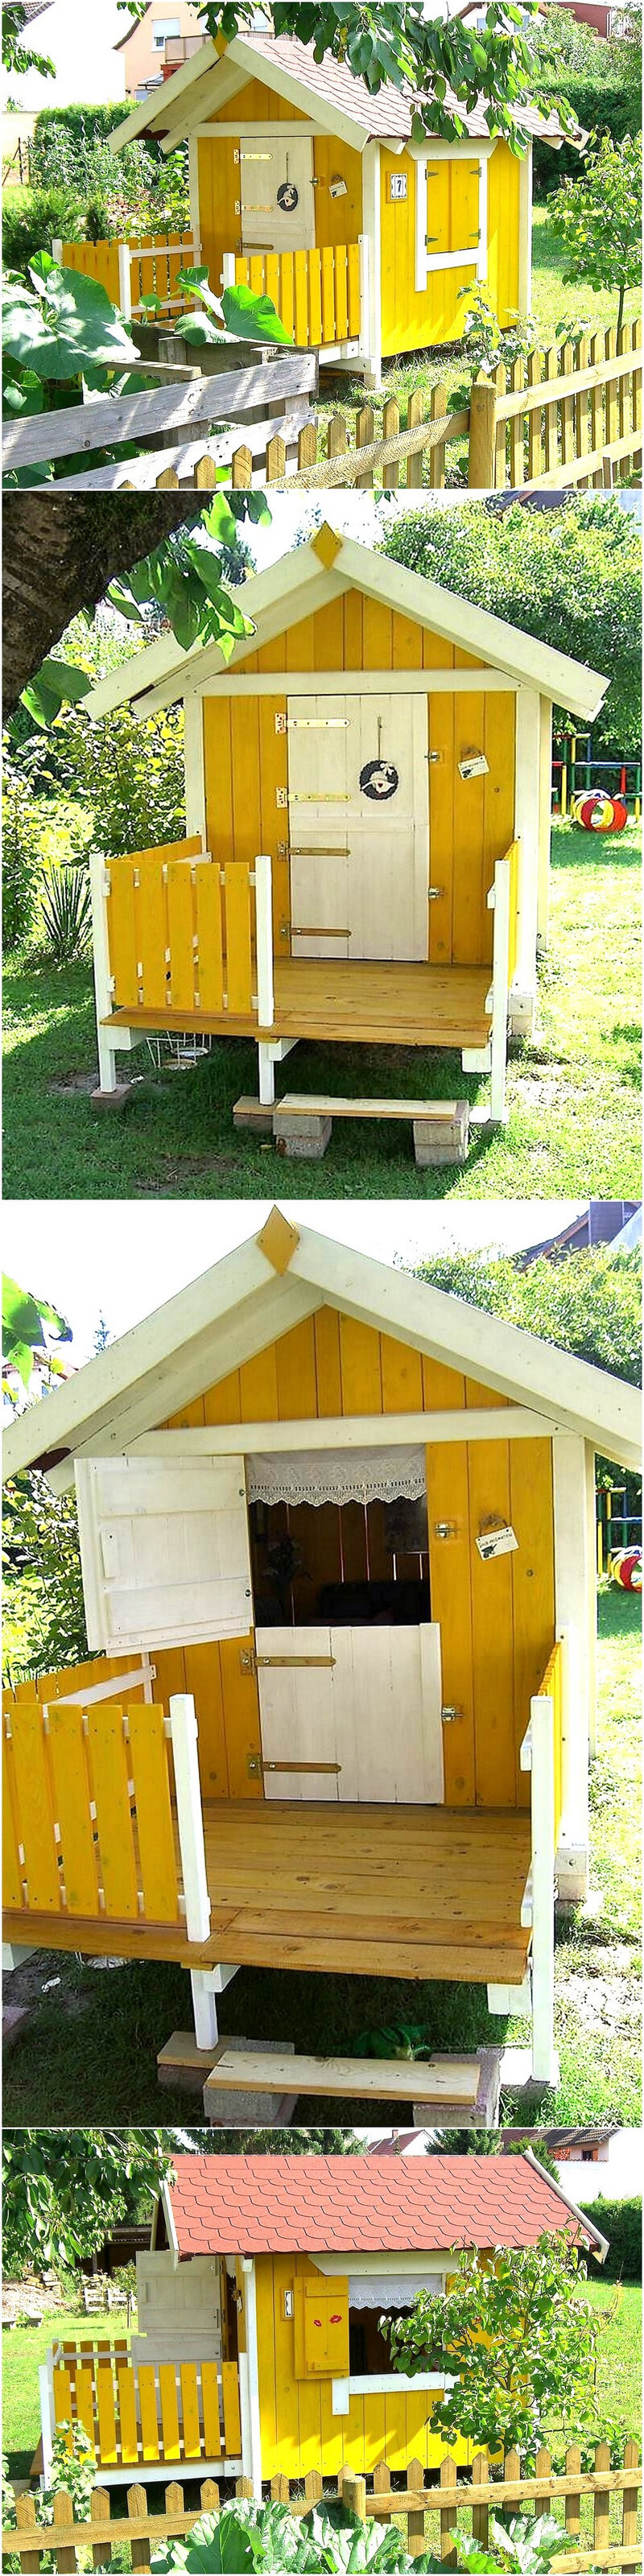 wood pallets patio kids play cabin